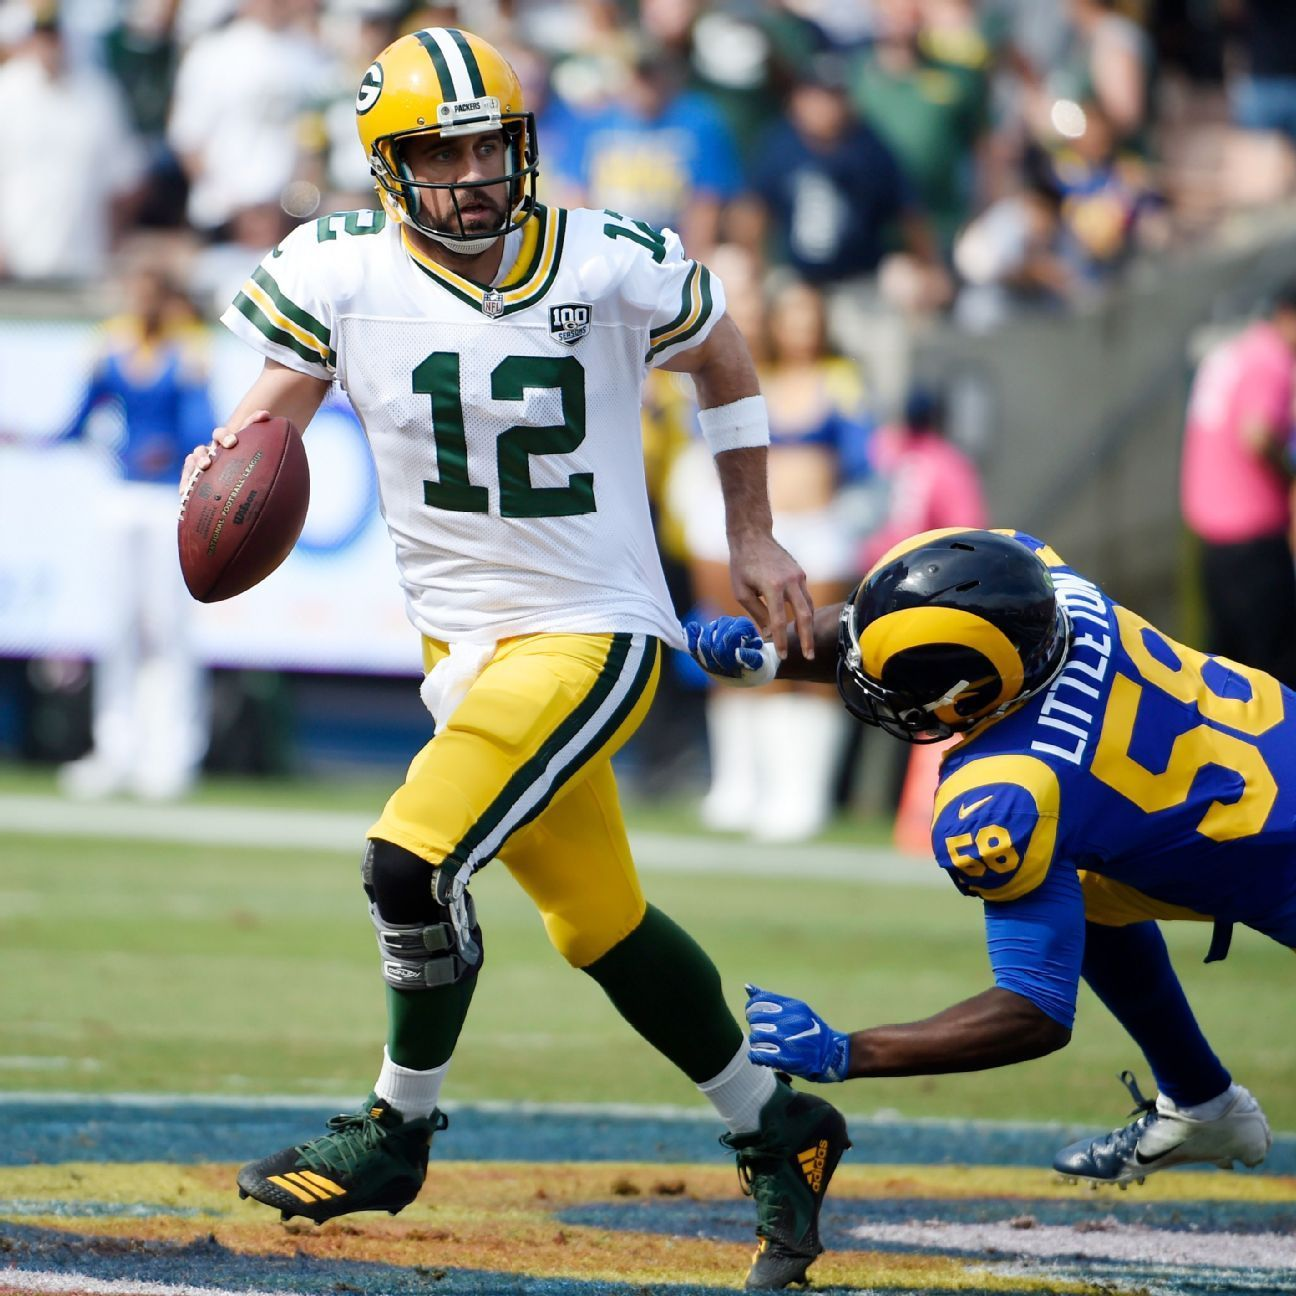 Green Bay Packers Wr Randall Cobb To Return Excited About What Aaron Rodgers Will Do Aaron Rodgers Green Bay Packers Green Bay